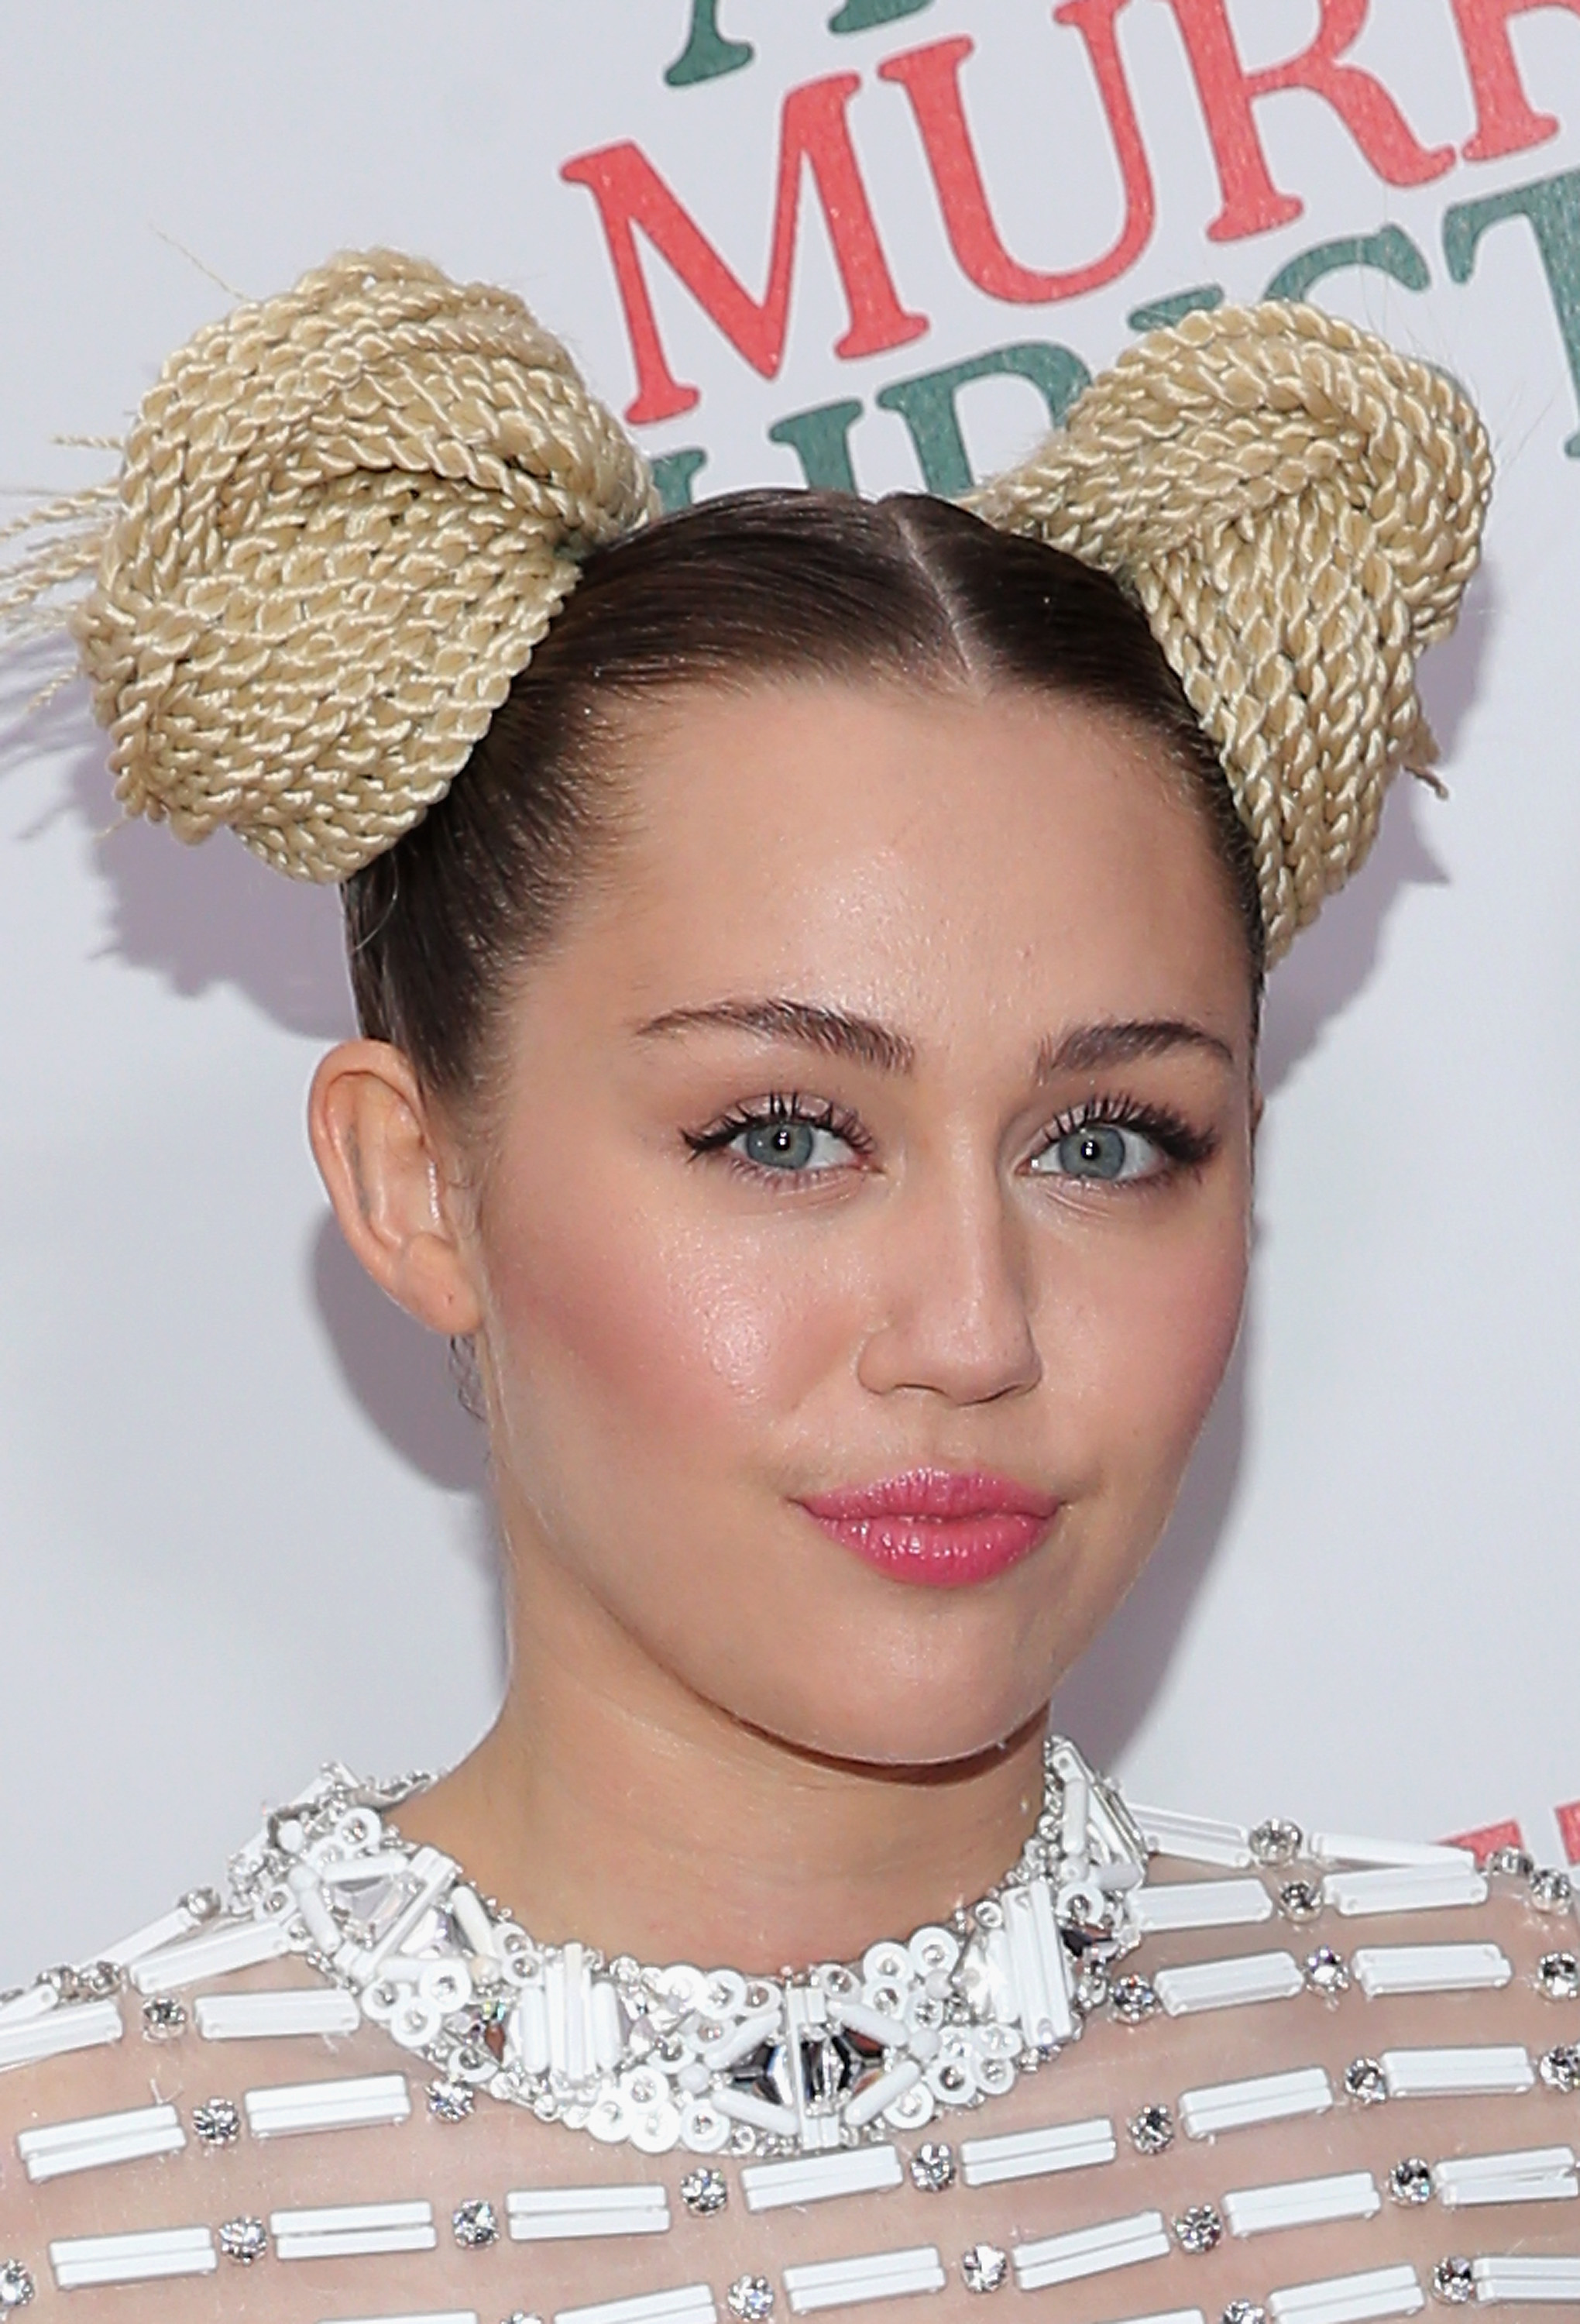 miley cyrus makeup free selfie is shockingly normal � photos